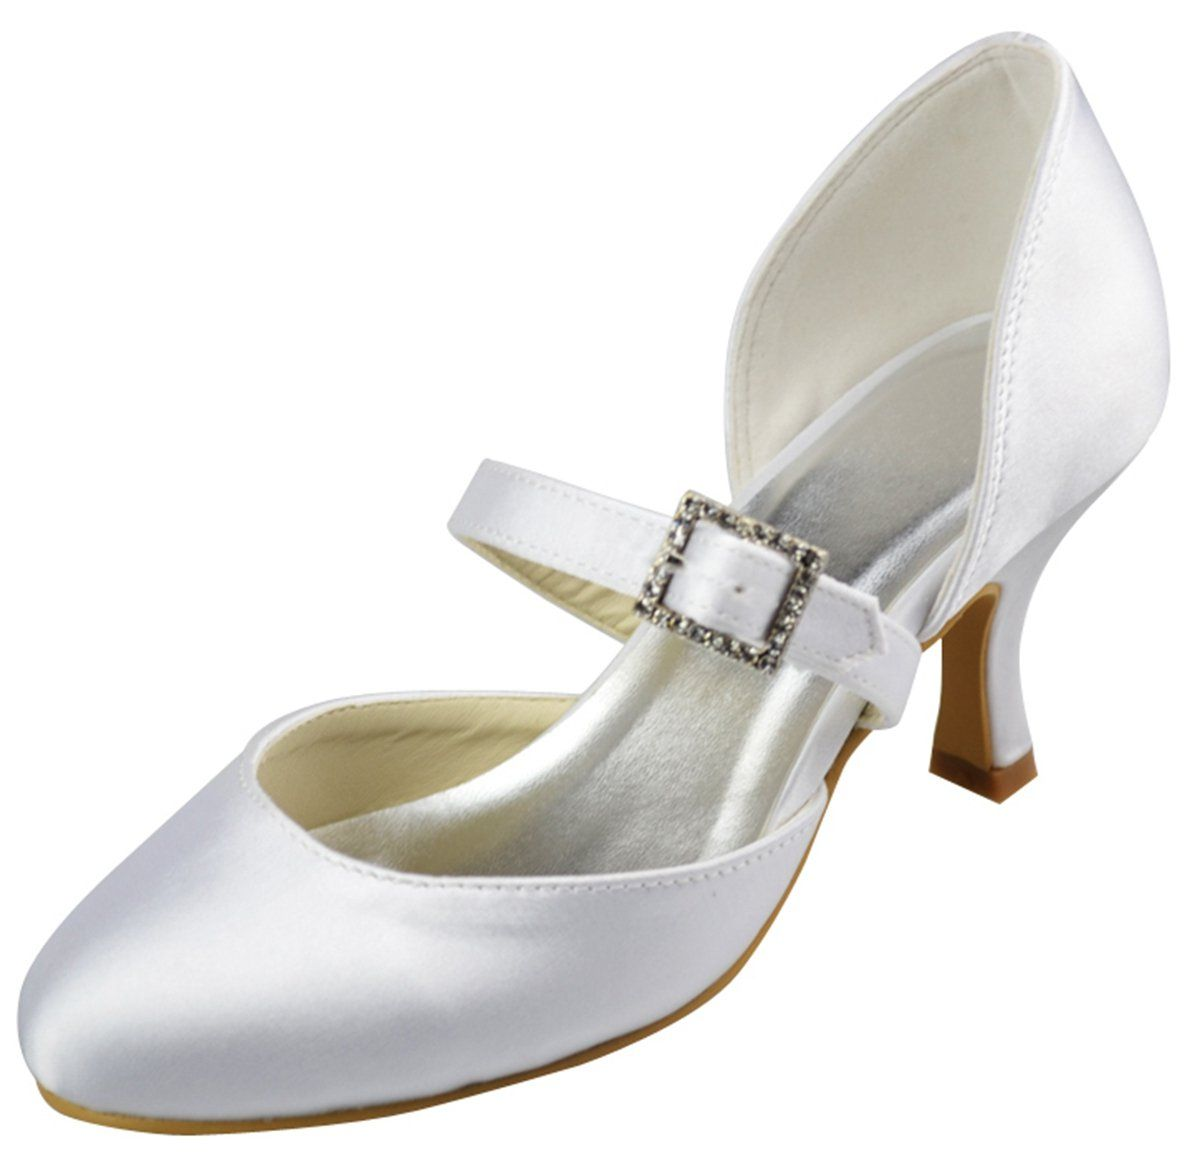 3dfeccca0cb Minitoo GYAYL249 Womens Kitten Heel Closed Toe Ivory Satin Evening Party  Bridal Wedding Mary Jane Shoes 11 M US. Custom-made the heel height and  color